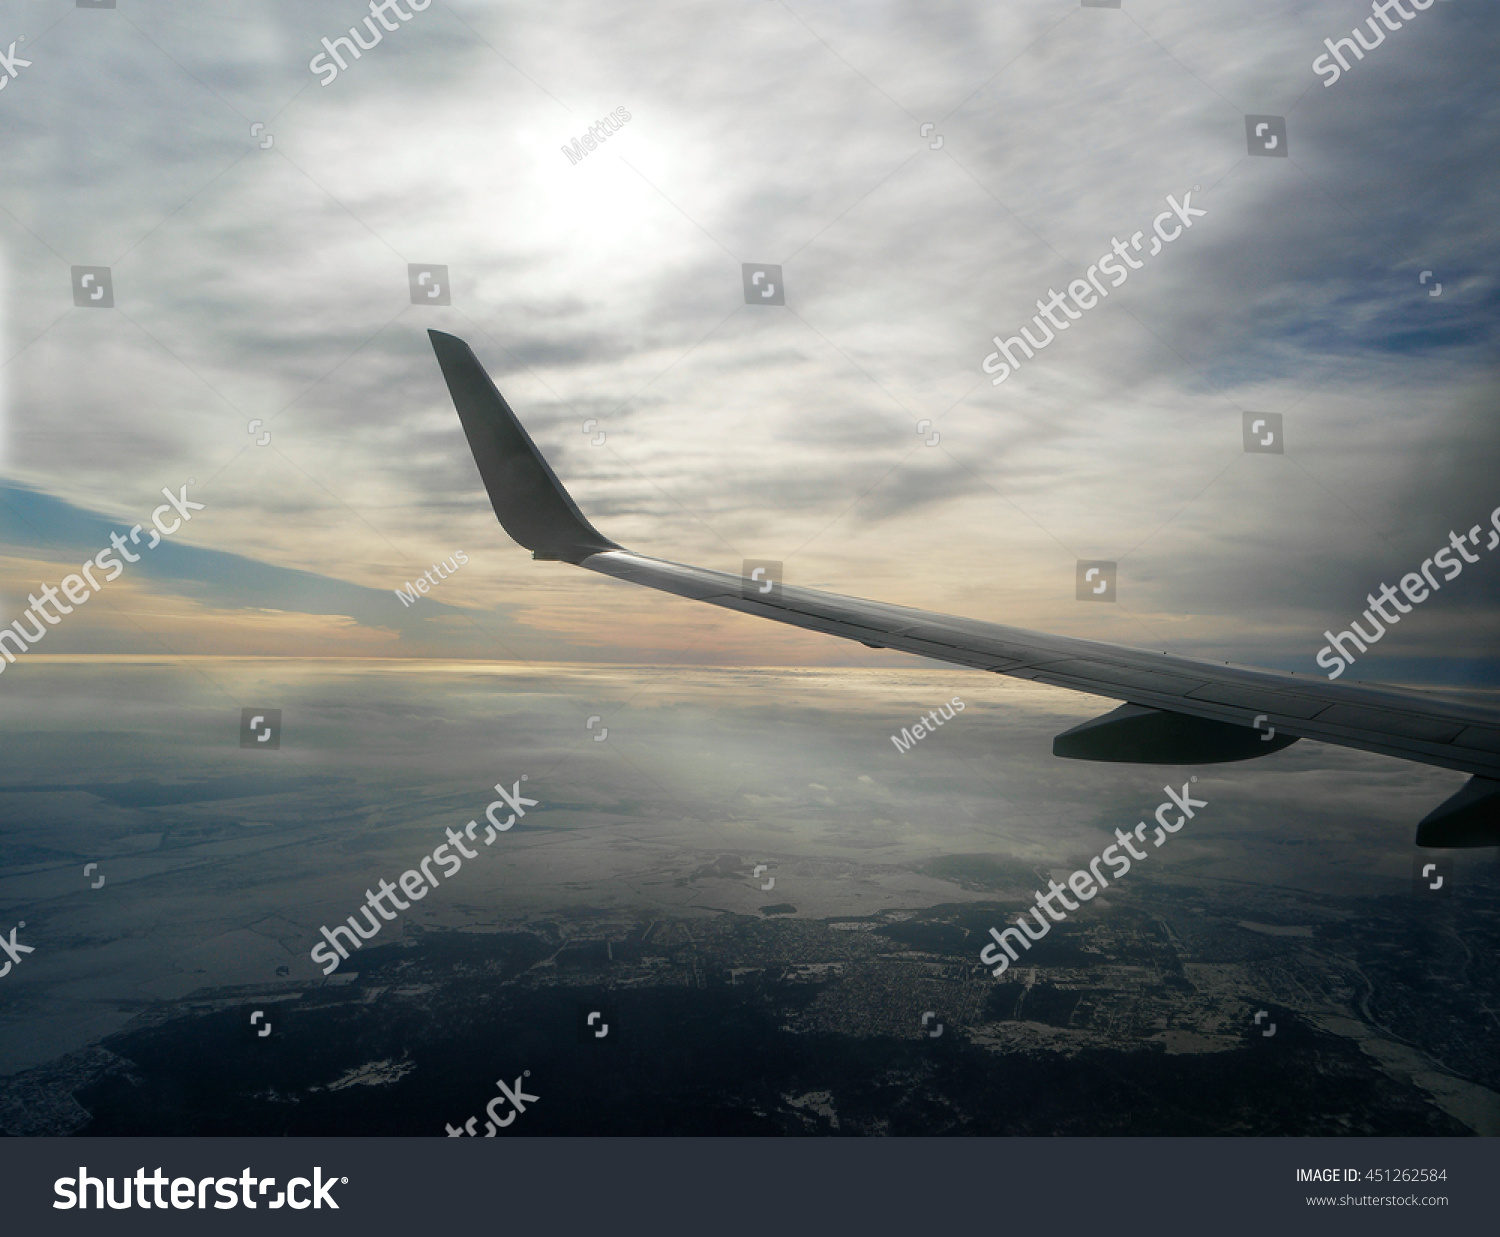 stock-photo-wing-of-aircraft-in-front-of